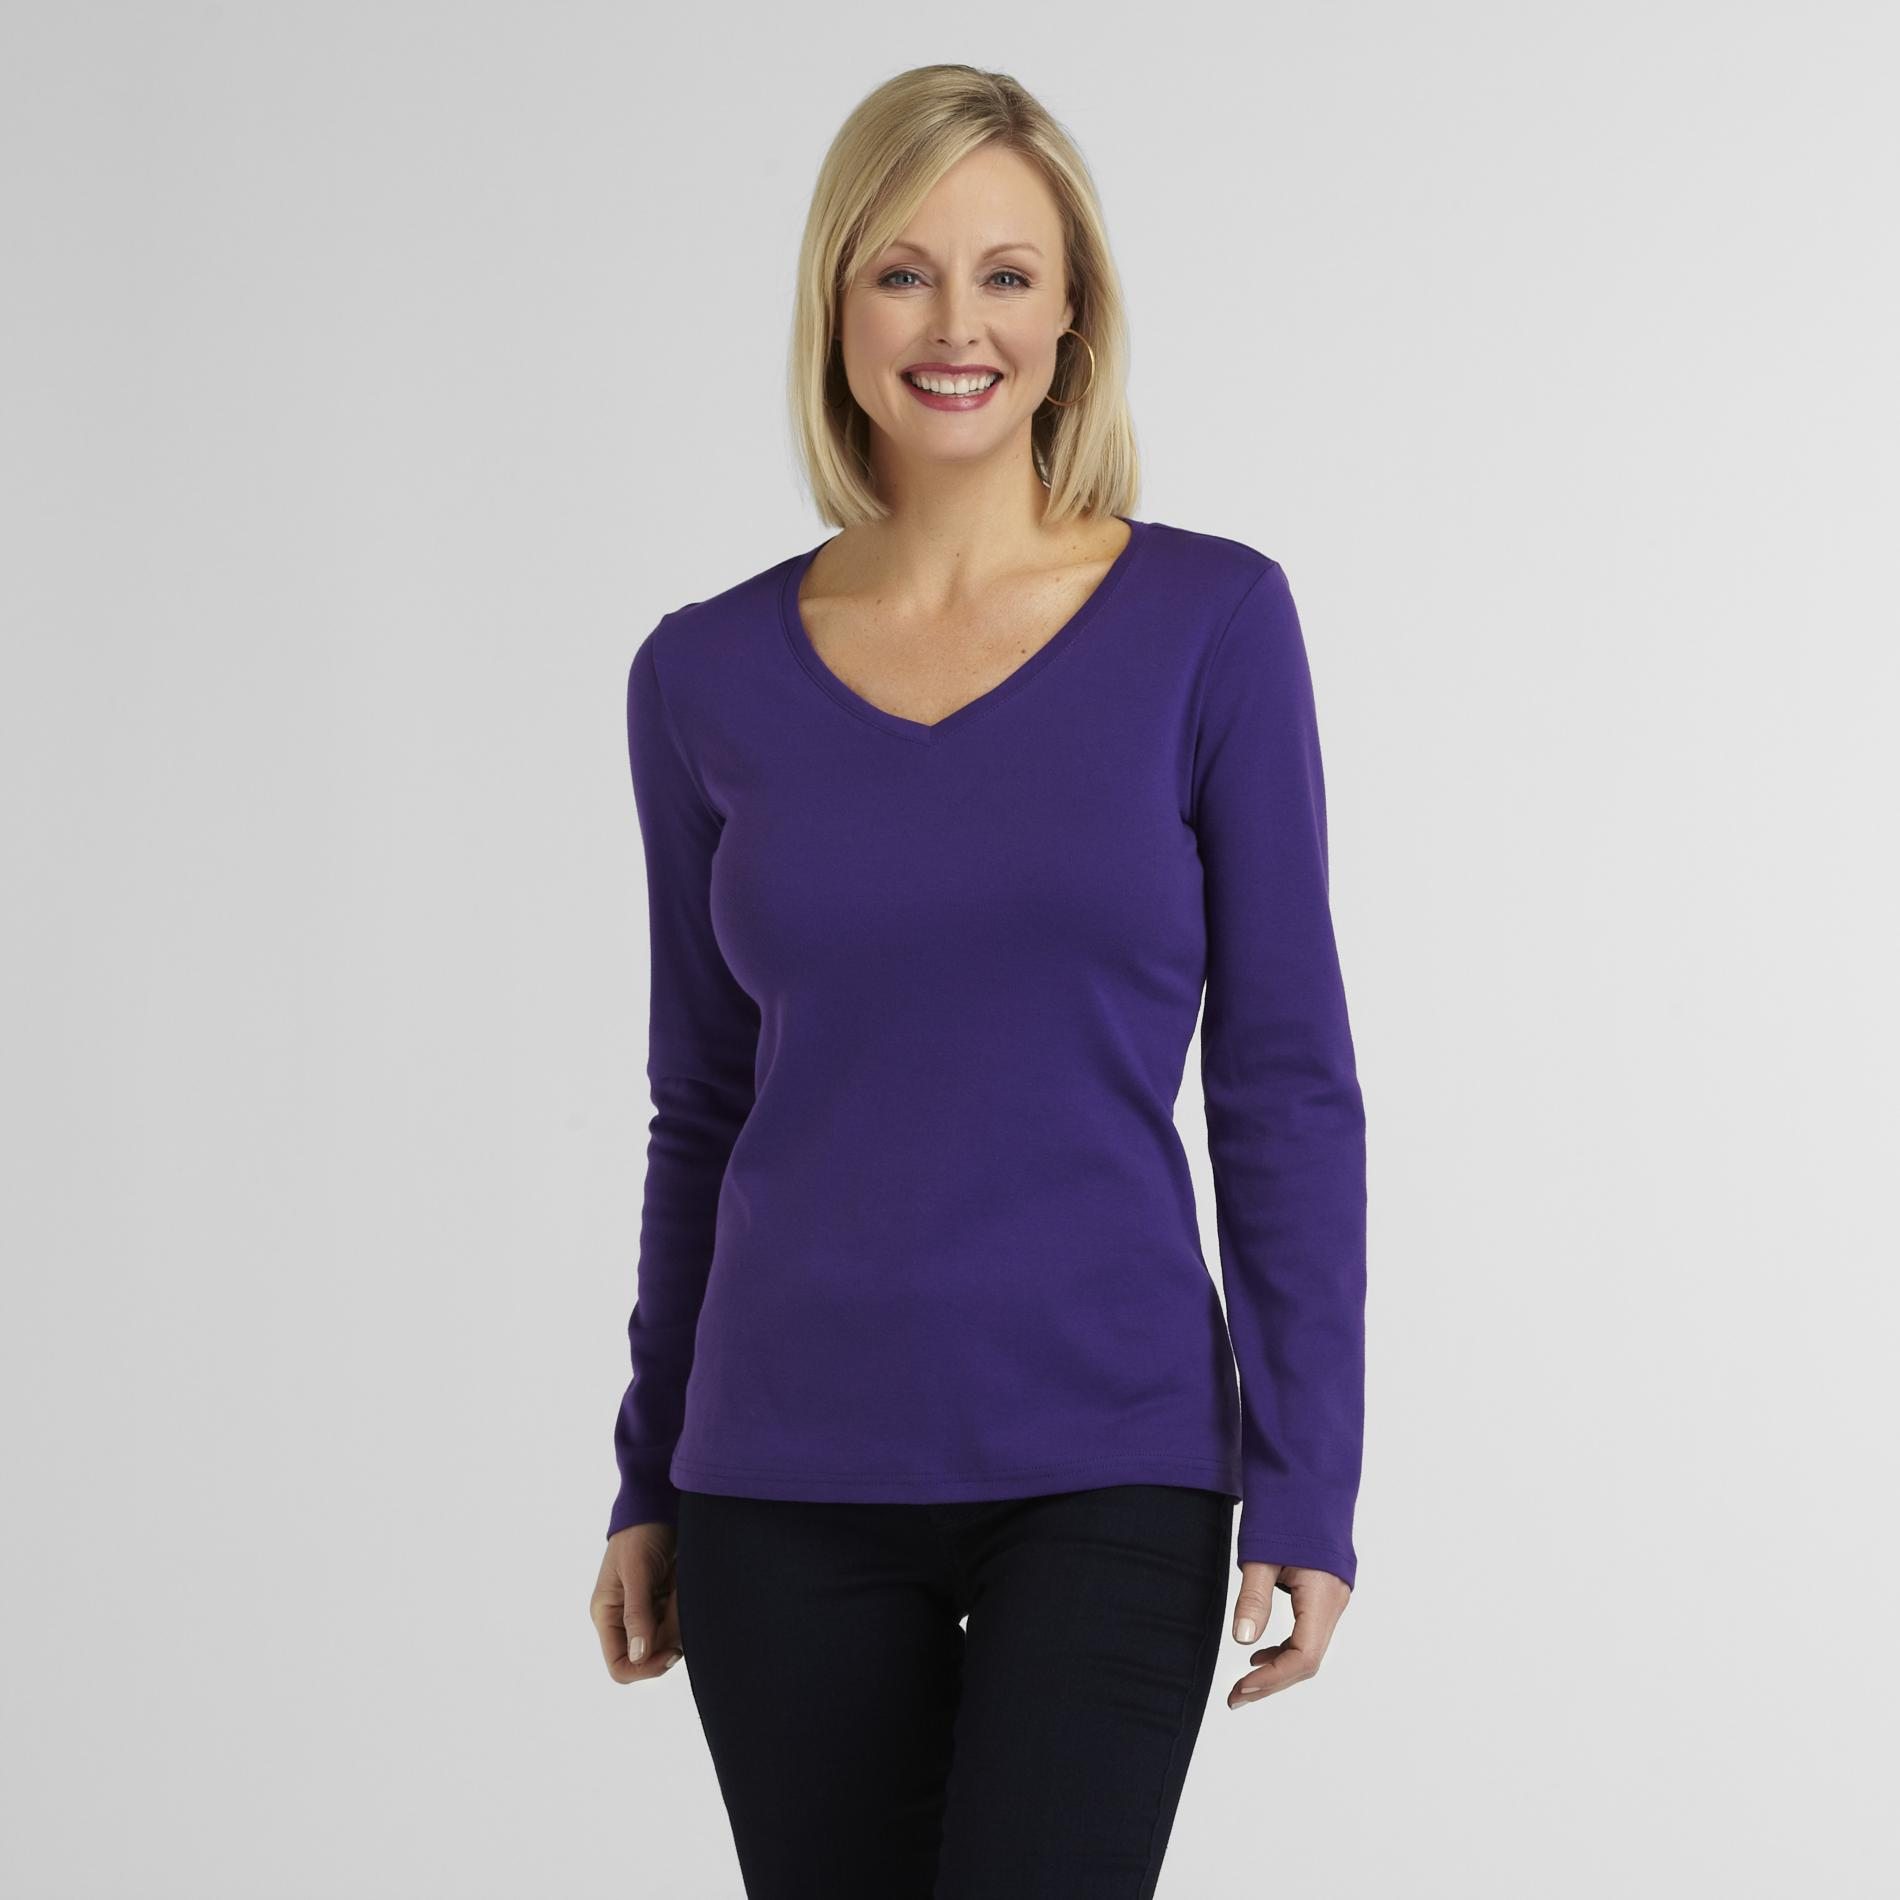 Laura Scott Women's V-Neck T-Shirt at Sears.com